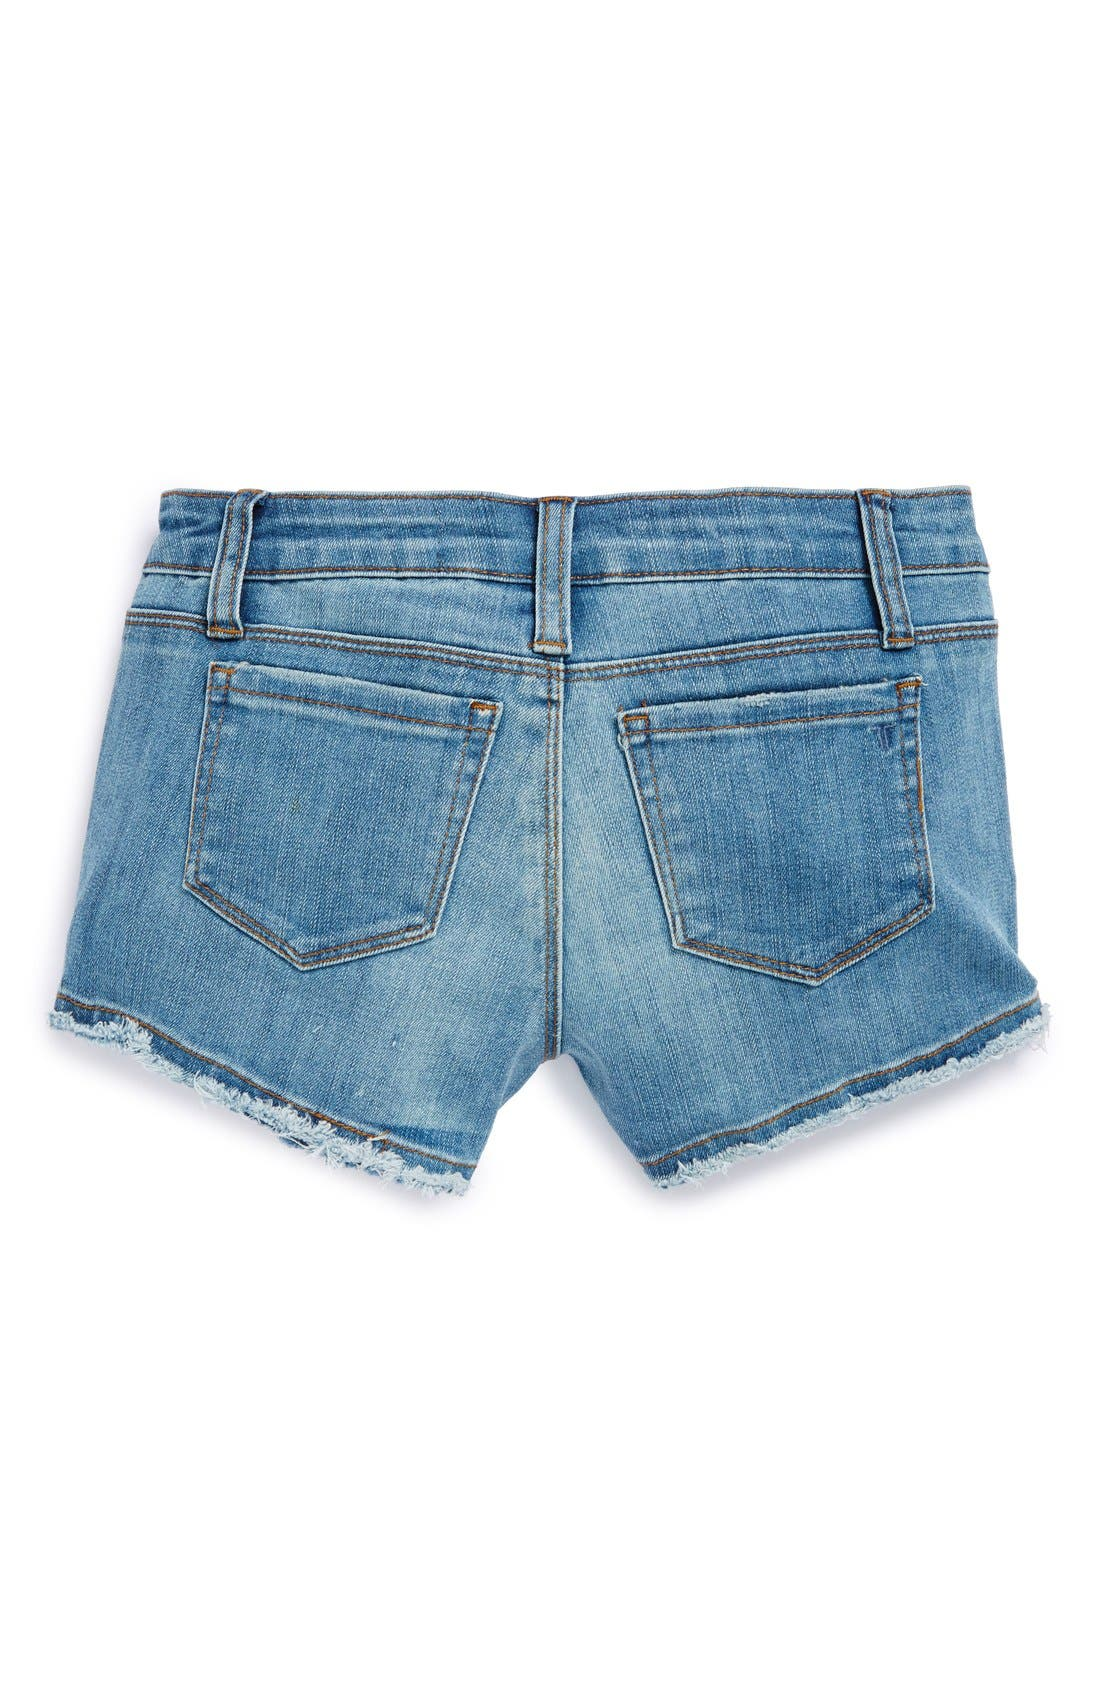 Main Image - Tractr Frayed Shorts (Big Girls)